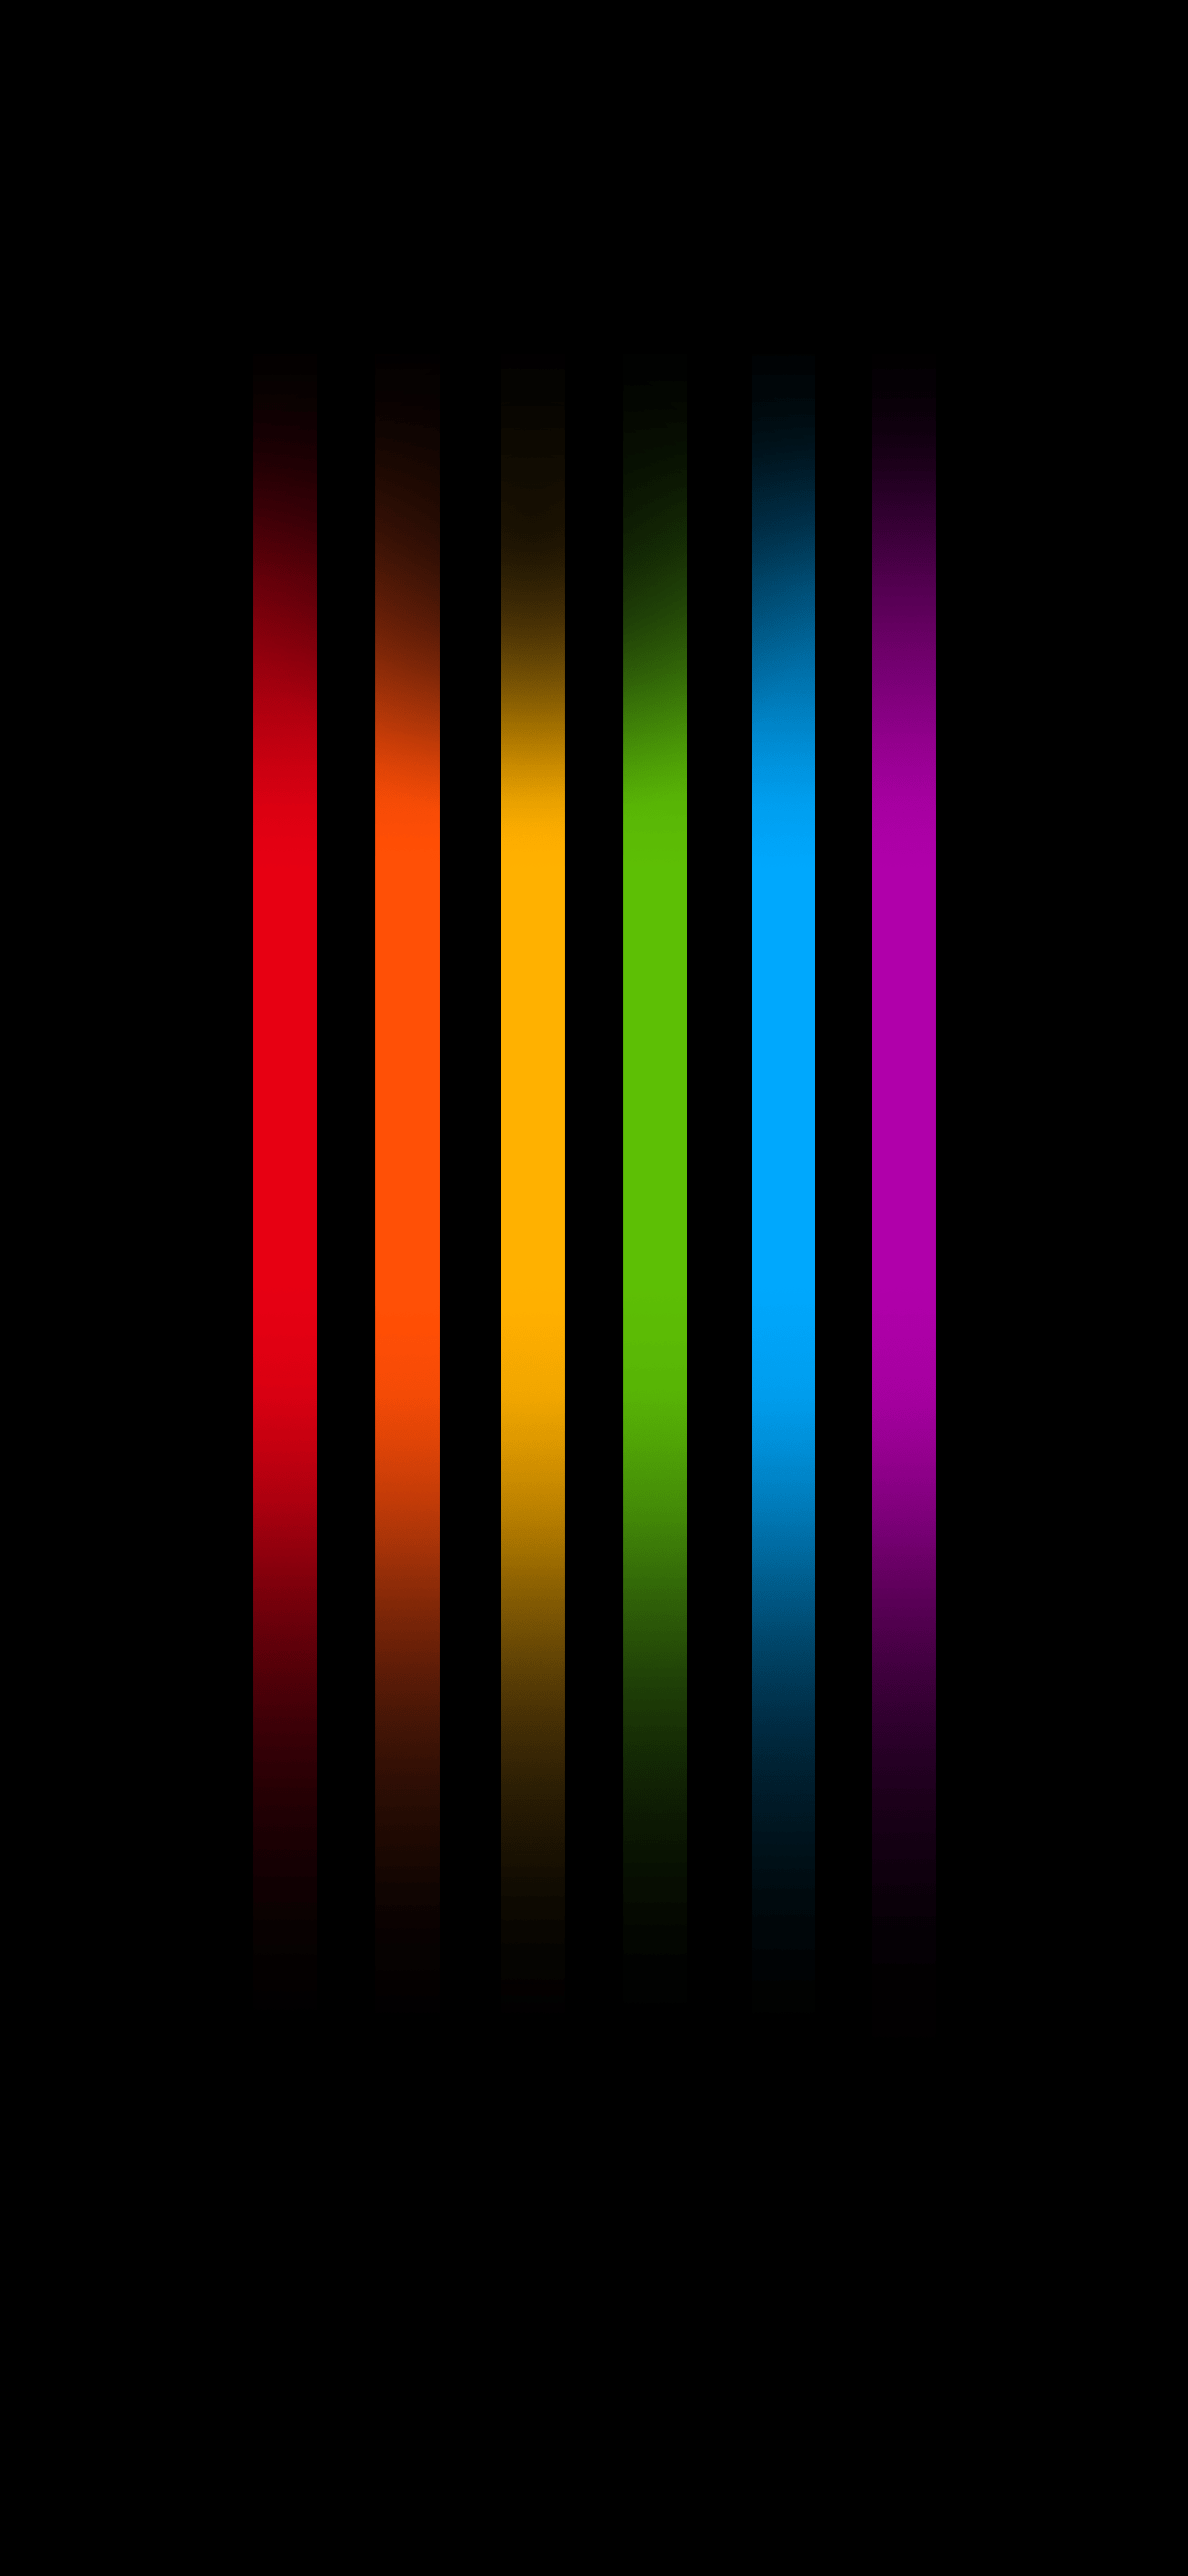 How To Make Live Wallpaper Iphone X Pride Watch Face Wallpaper Wallpapers Central